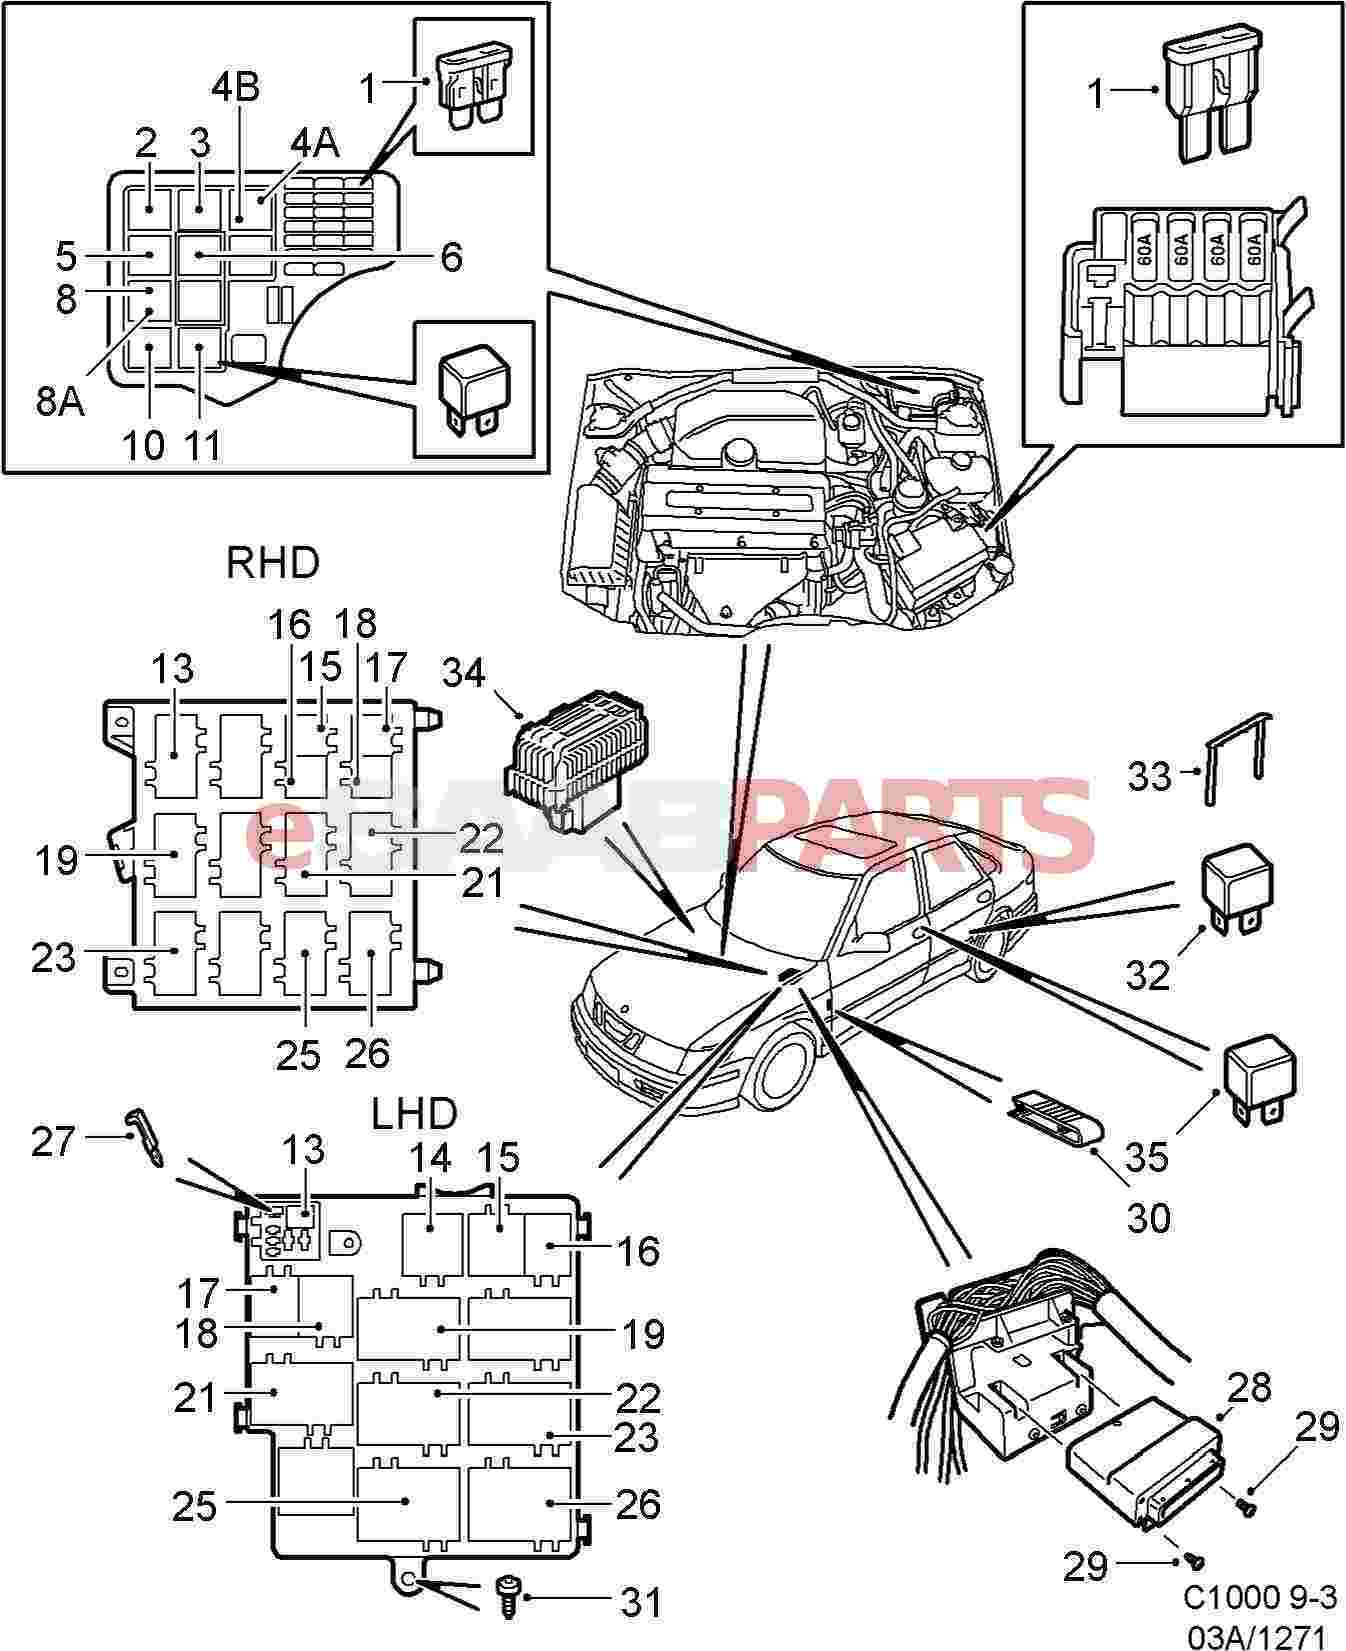 2004 saab 9 3 audio wiring diagram 2007 ford focus radio speaker wire auto